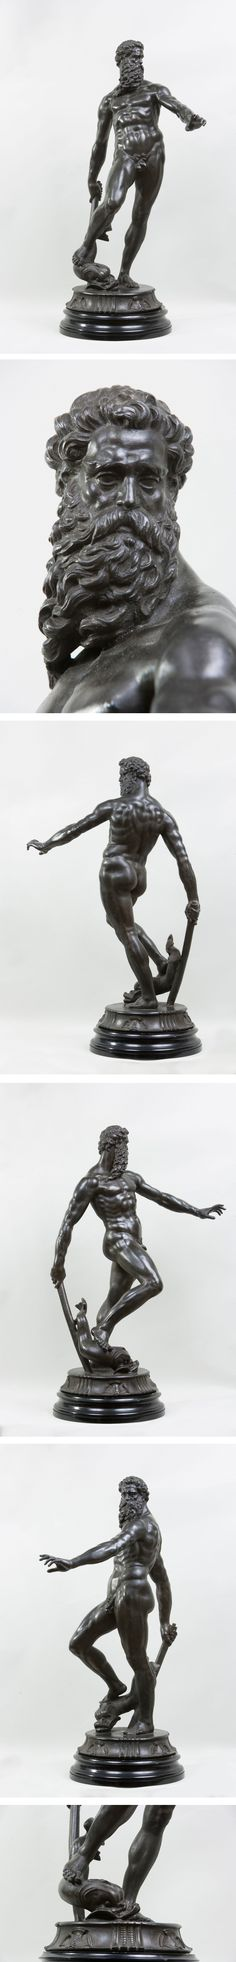 After Giambologna, Bronze Figure of Neptune, 18th - 19th Century; on a wooden circular base - Dim: Bronze: 82 x 47 cm